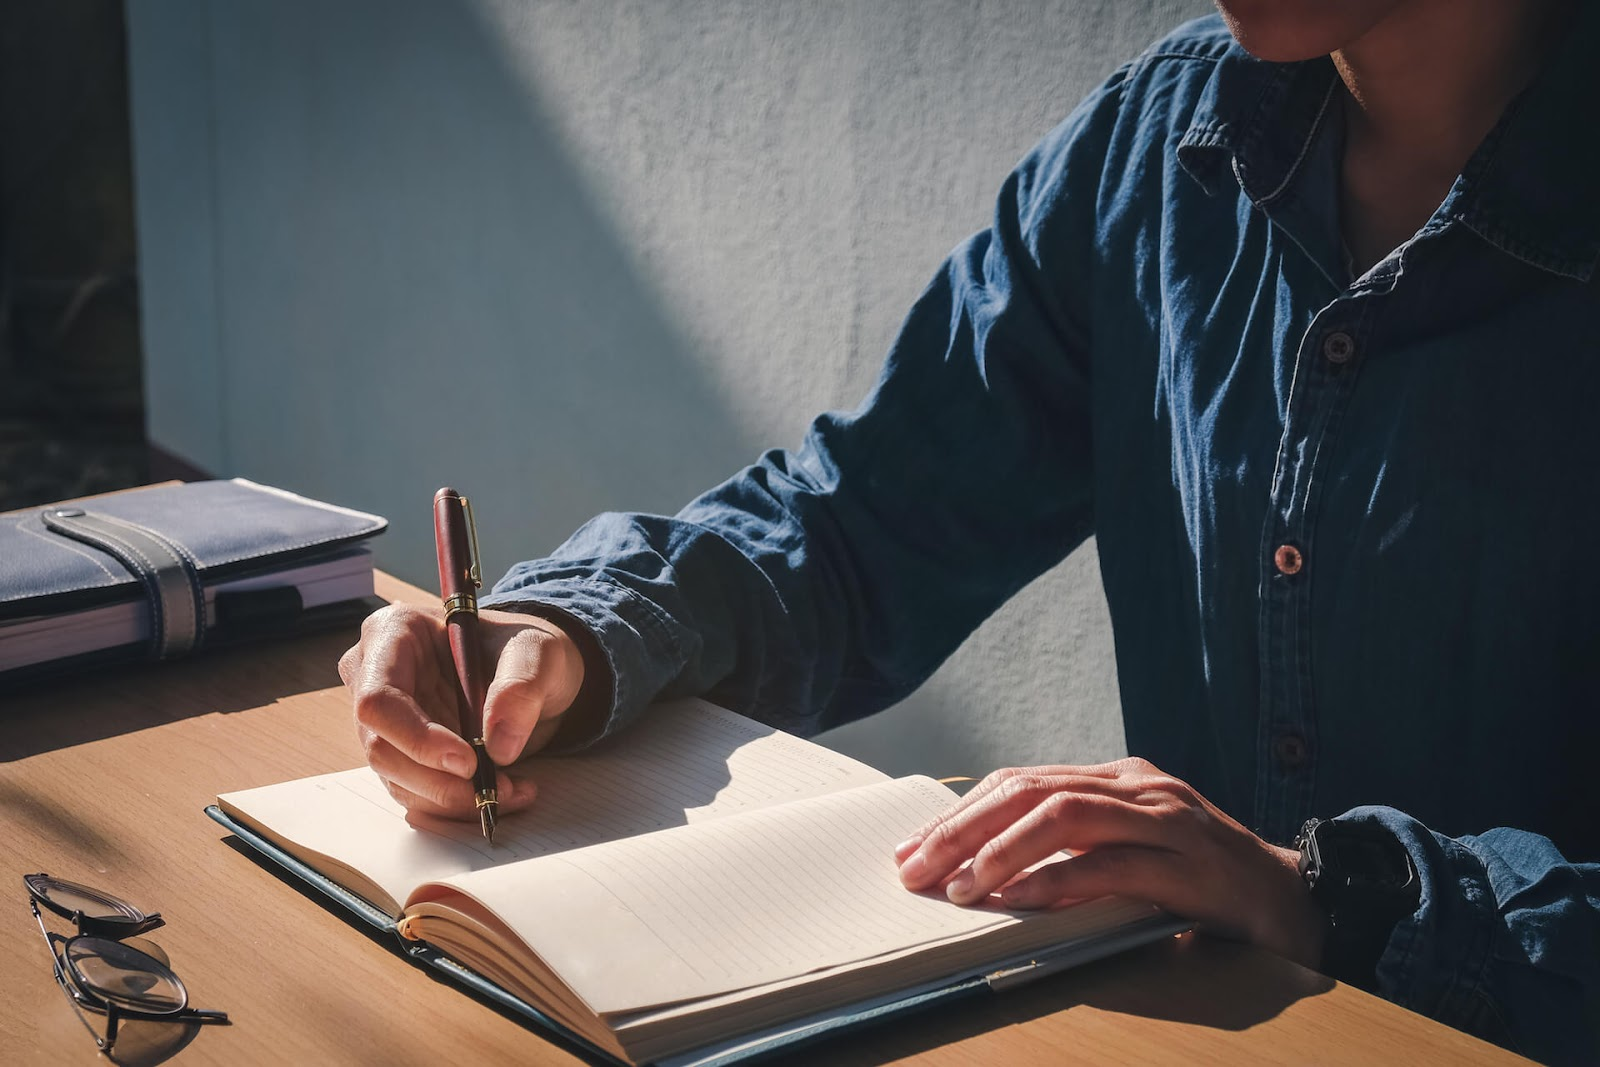 Man writing in journal at desk